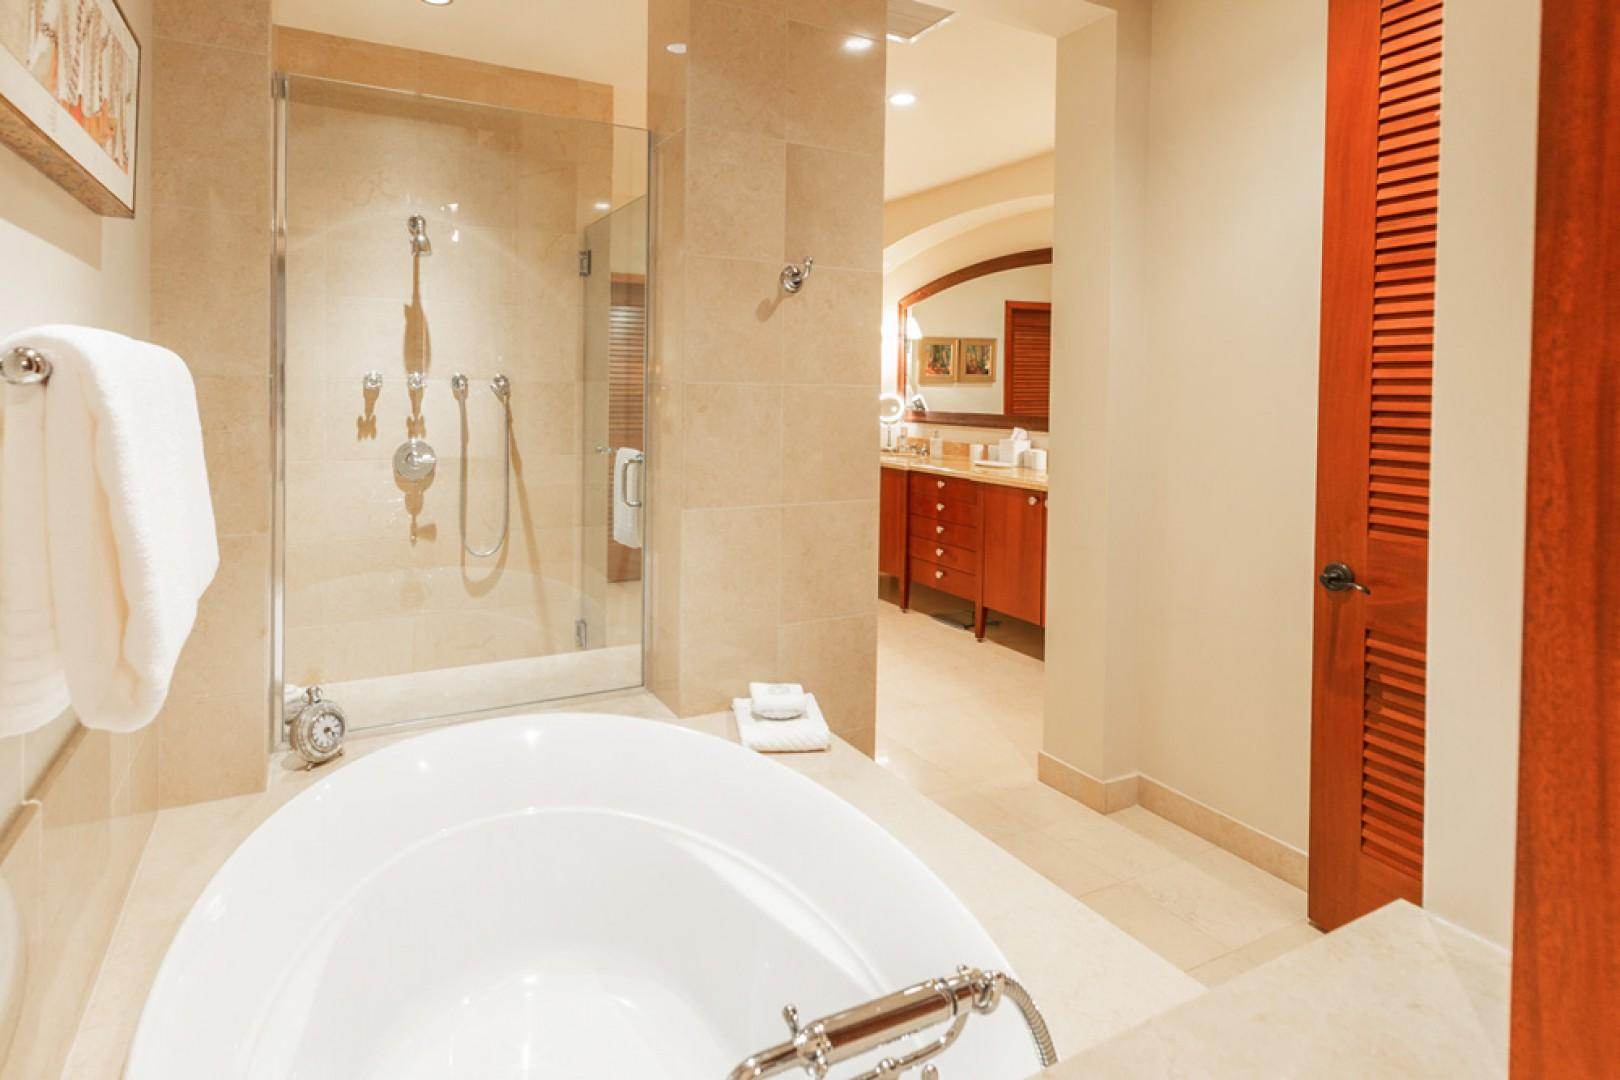 L509 Sandcastles Suite Ocean View Master Bedroom Bath with Private WC, Walk-In Customized Closet with Safe, Separate Glass Shower, Deep SoakingOcean View Master Bedroom Bath with Private WC, Walk-In Customized Closet with Safe, Separate Glass Shower, Deep